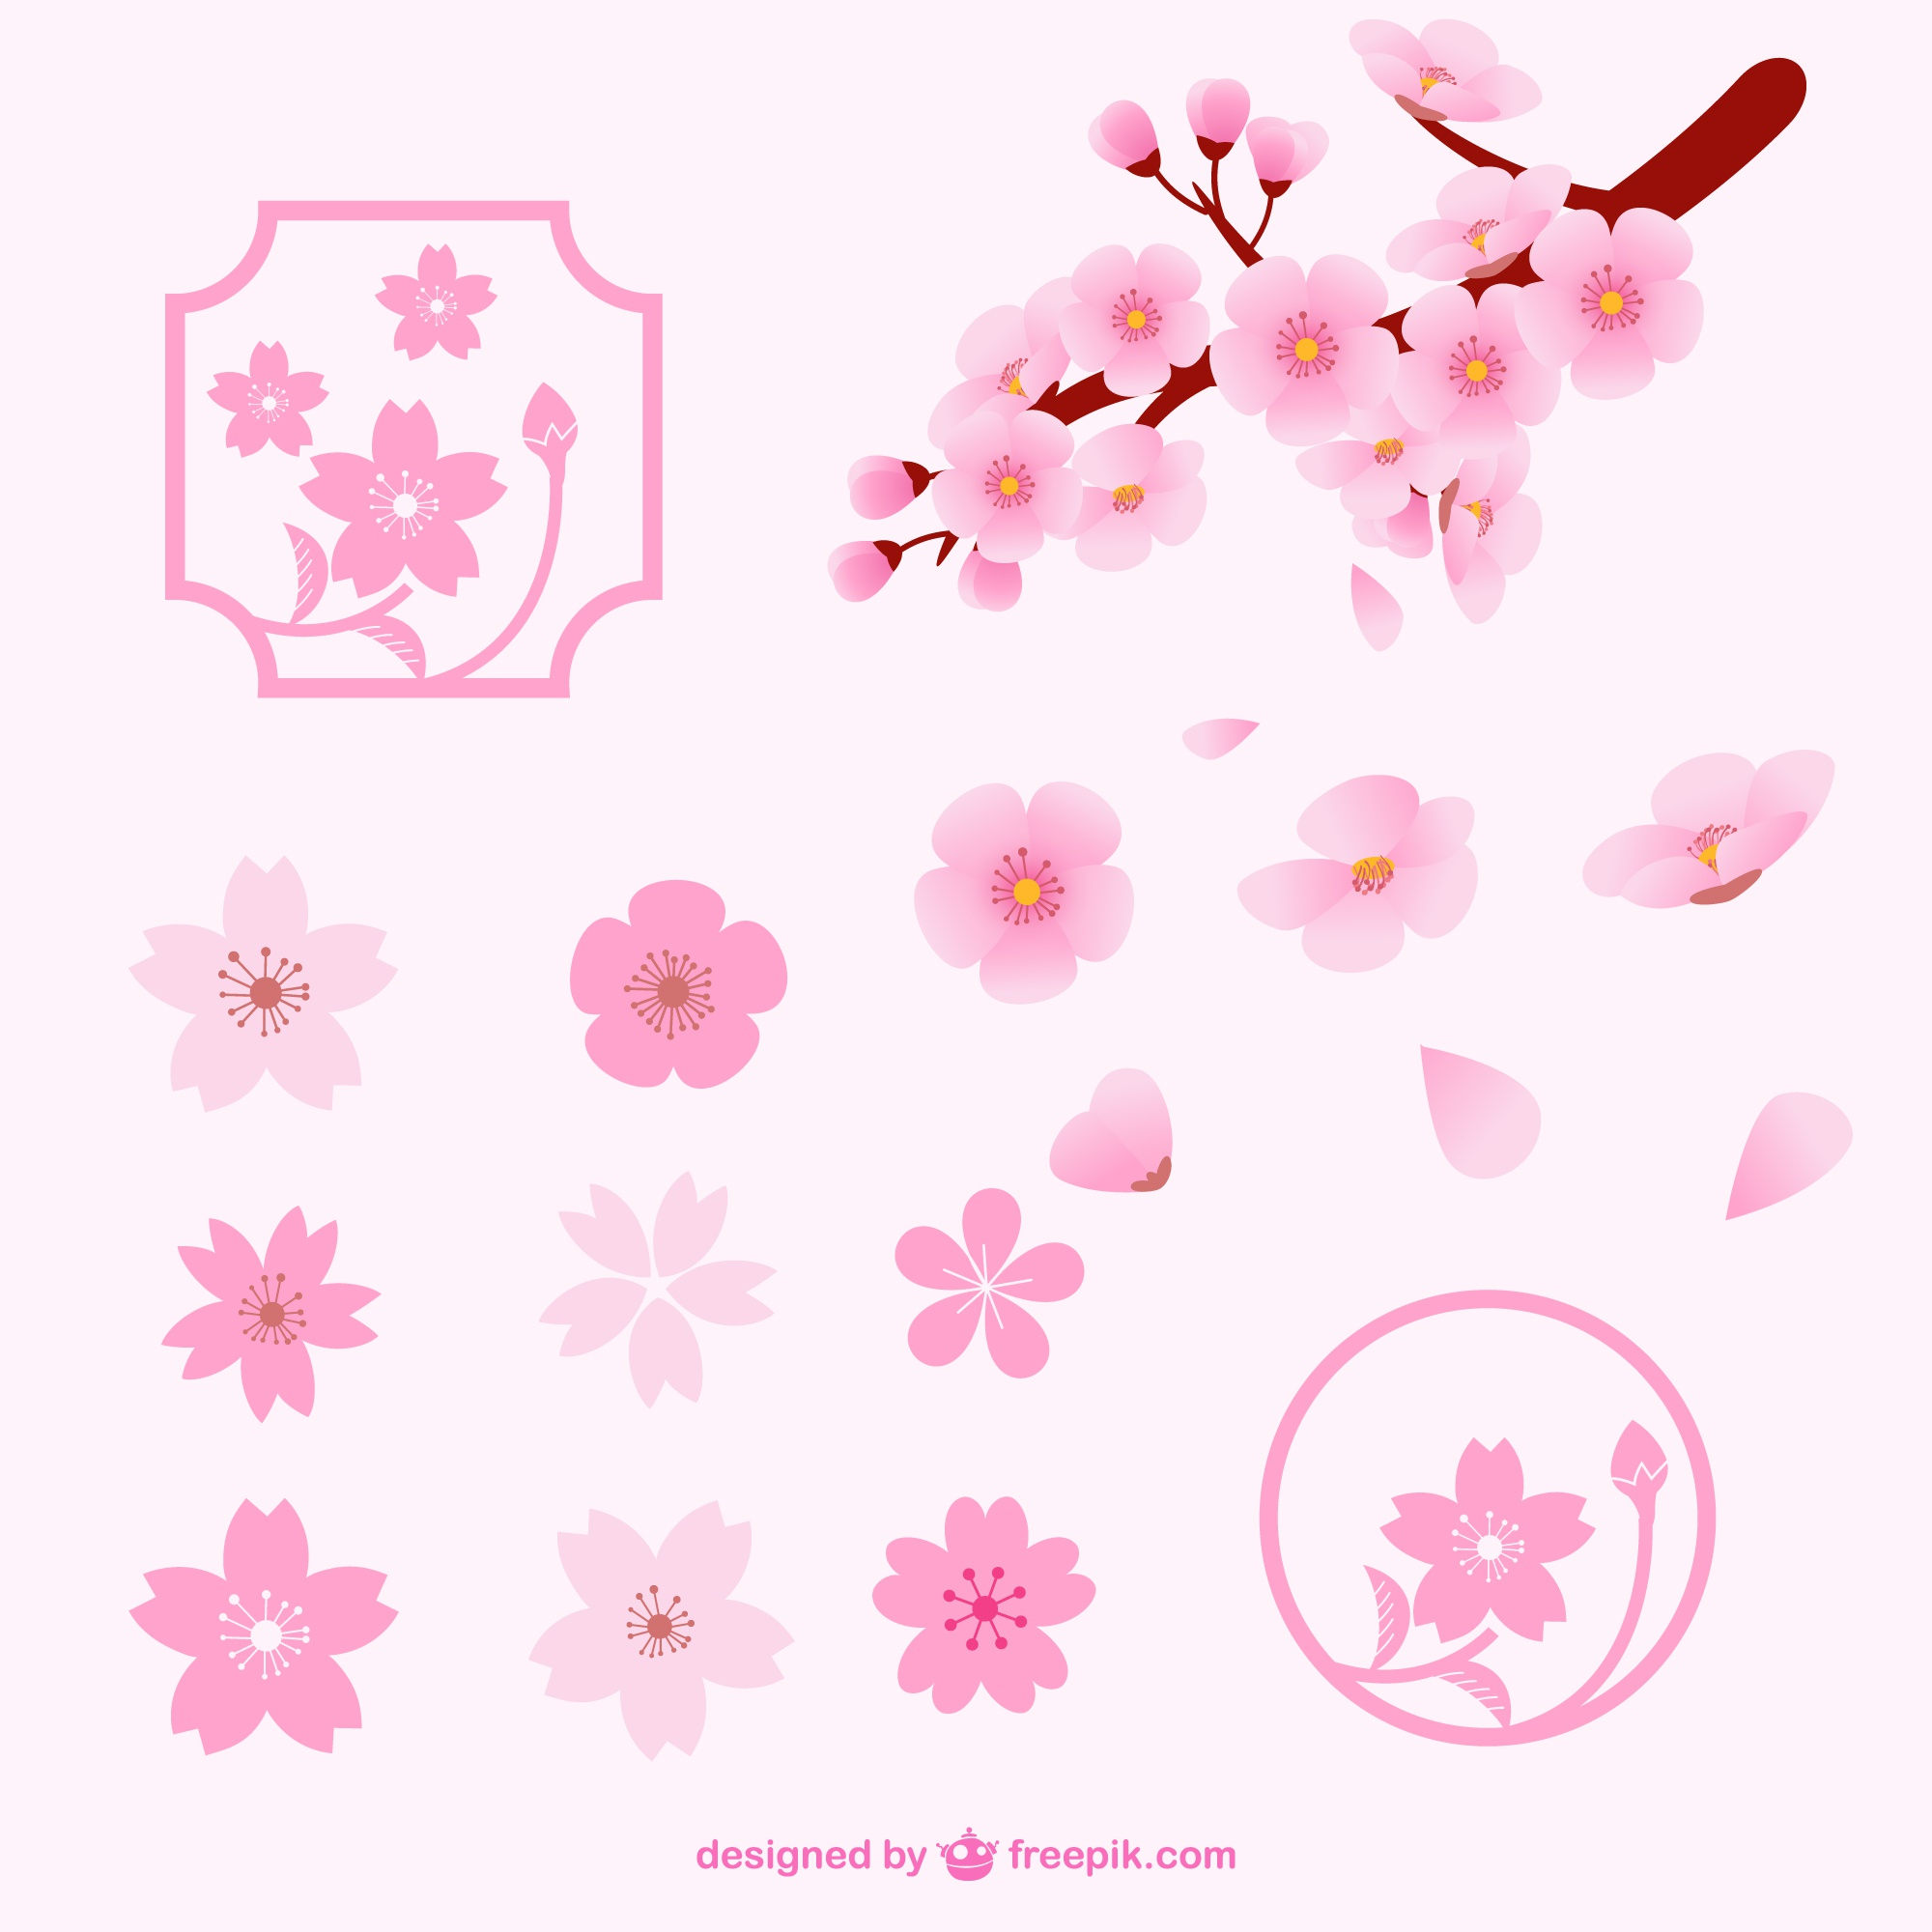 Different cherry blossom flowers